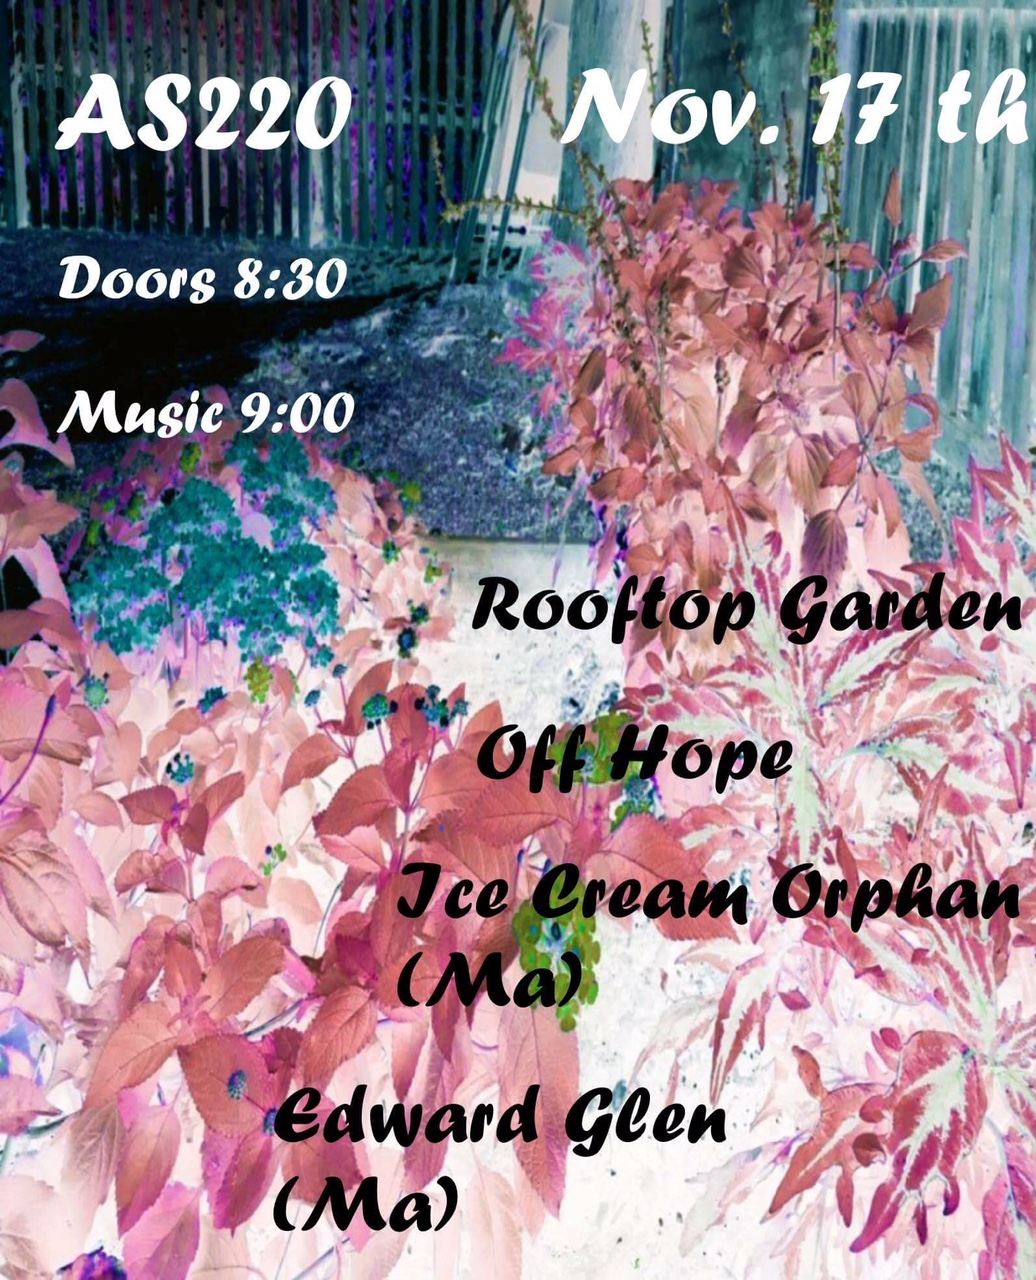 Edward Glen, Off Hope, Ice Cream Orphan, Roof Top Garden @ AS220 Main Stage | Providence | Rhode Island | United States